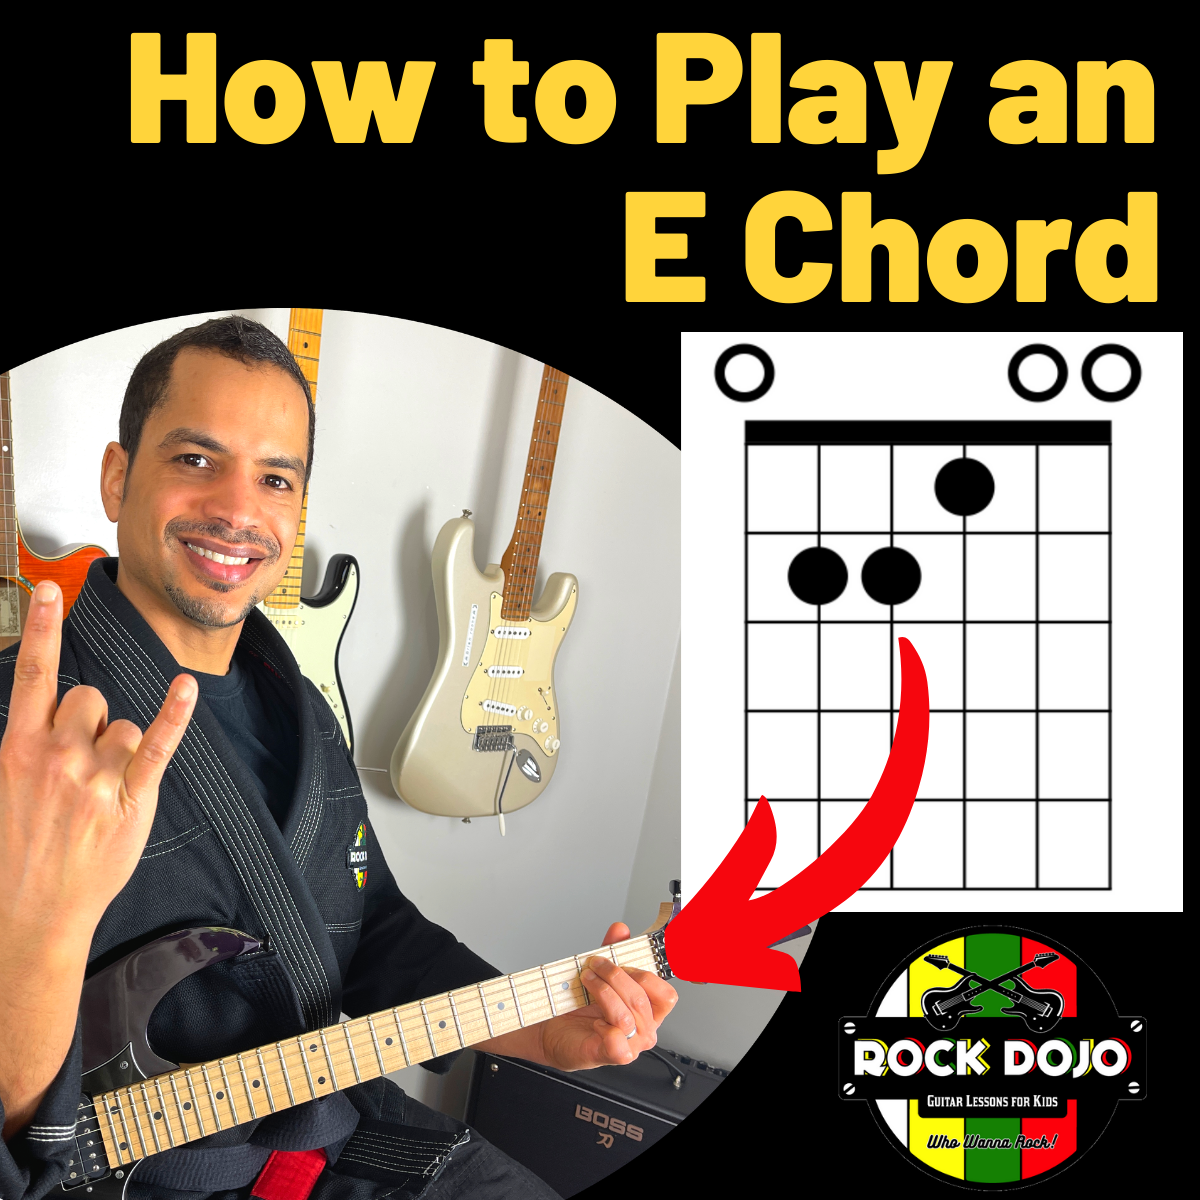 Learn how to play an e chord on guitar with this free online guitar lessons for kids